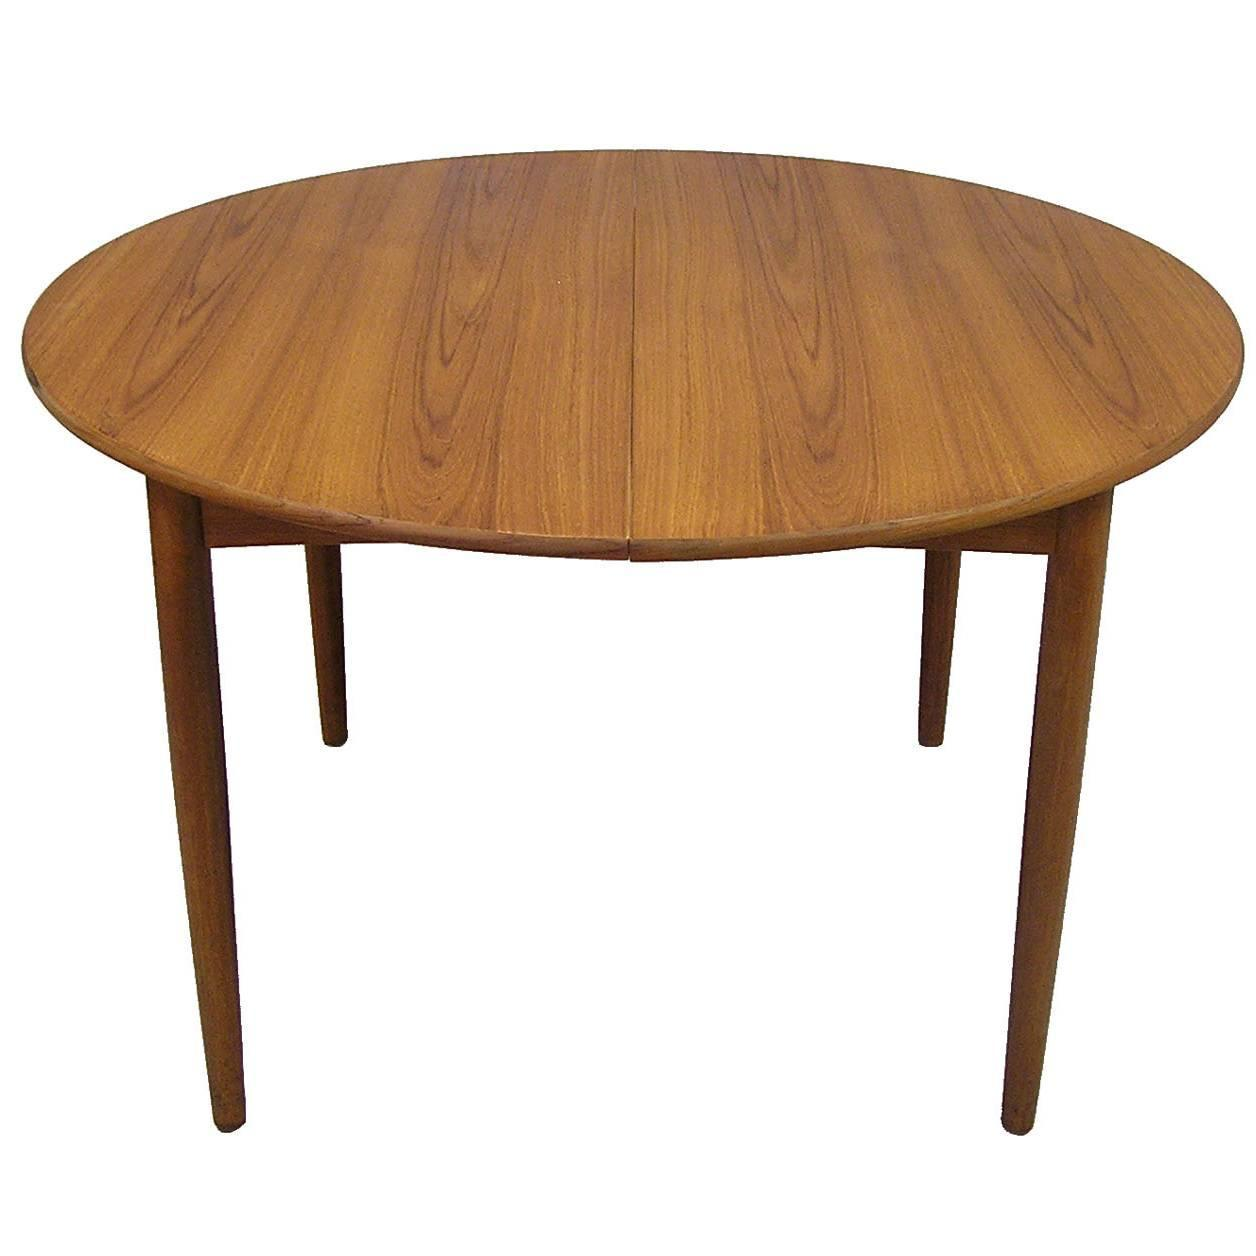 1950s danish teak dining table by brge mogensen model 121 - Scandinavian Teak Dining Room Furniture